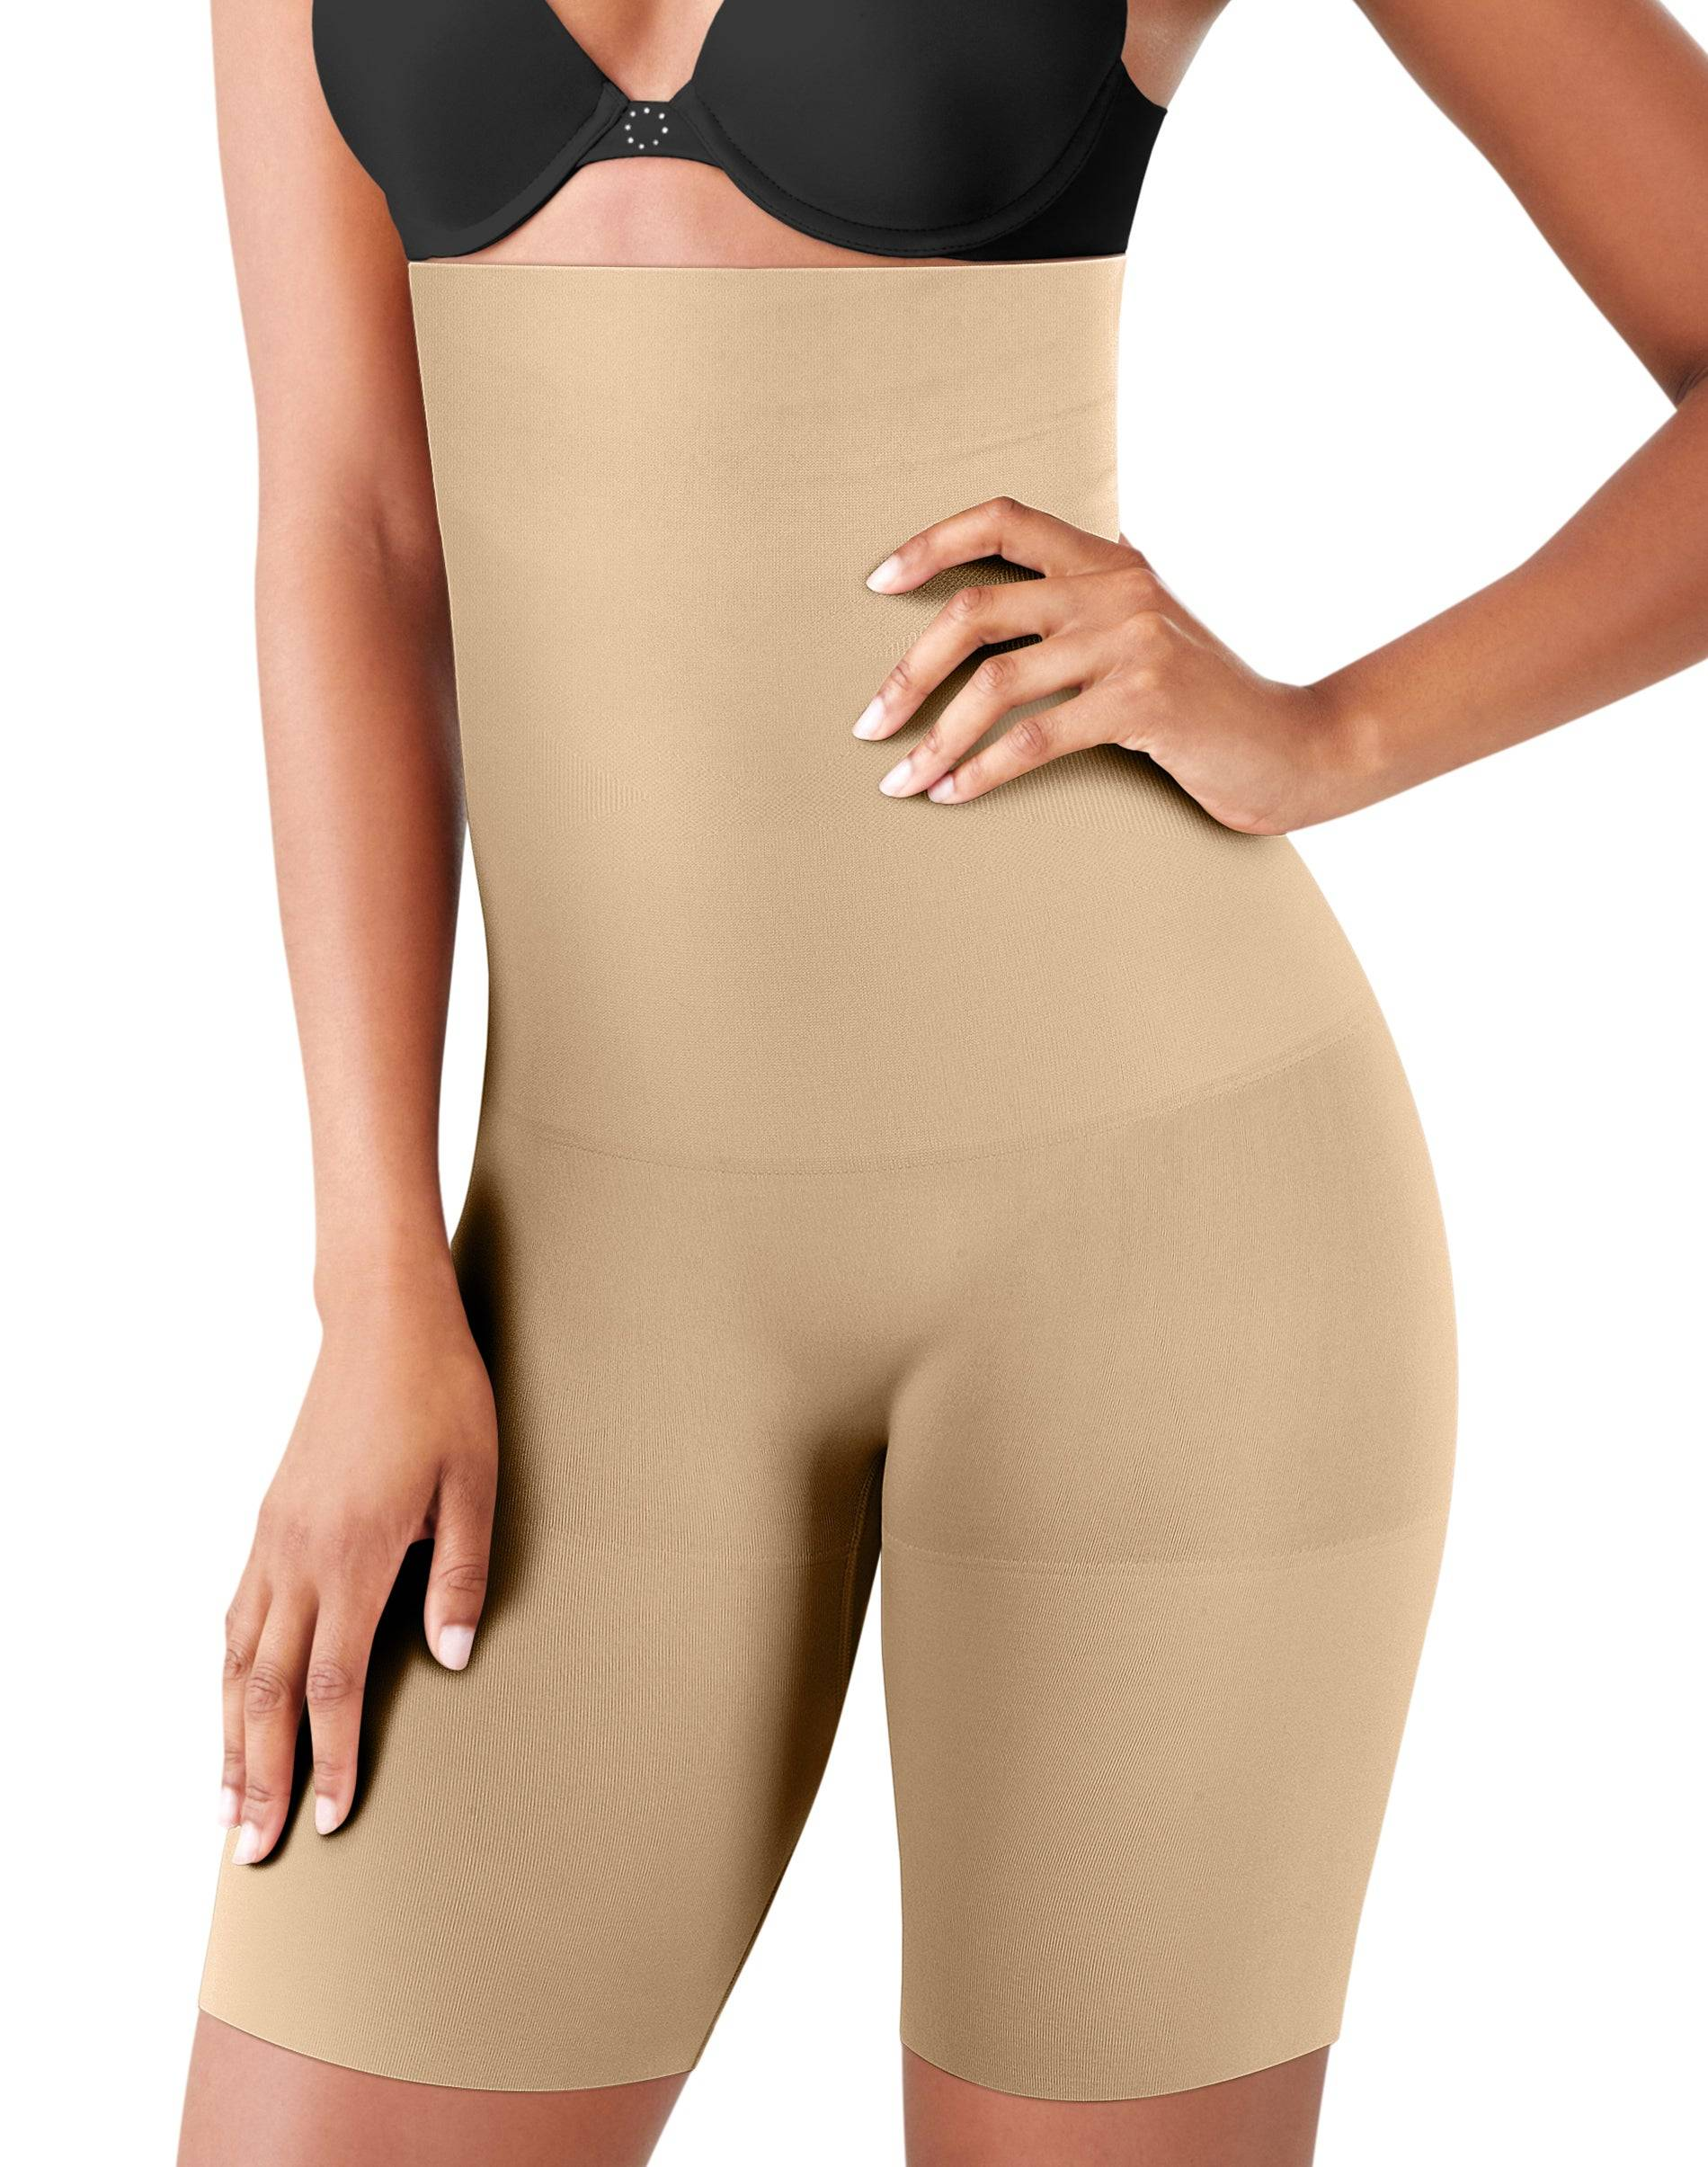 Maidenform High Waist Thigh Slimmer Latte Lift L Women's